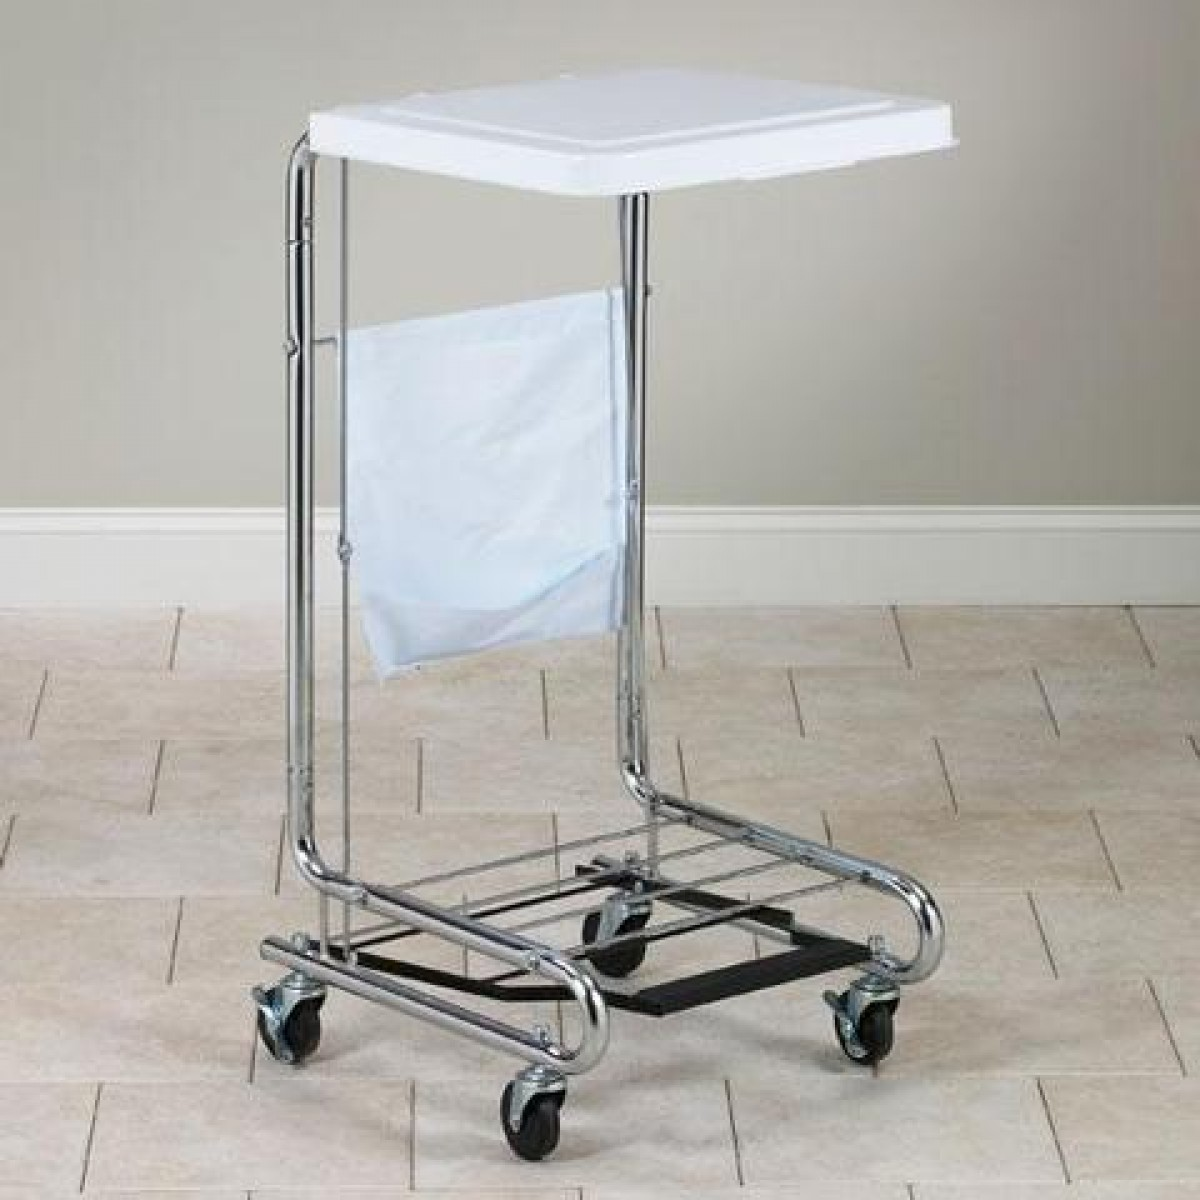 Laundry Hamper Hospital Rolling Hamper Healthcare